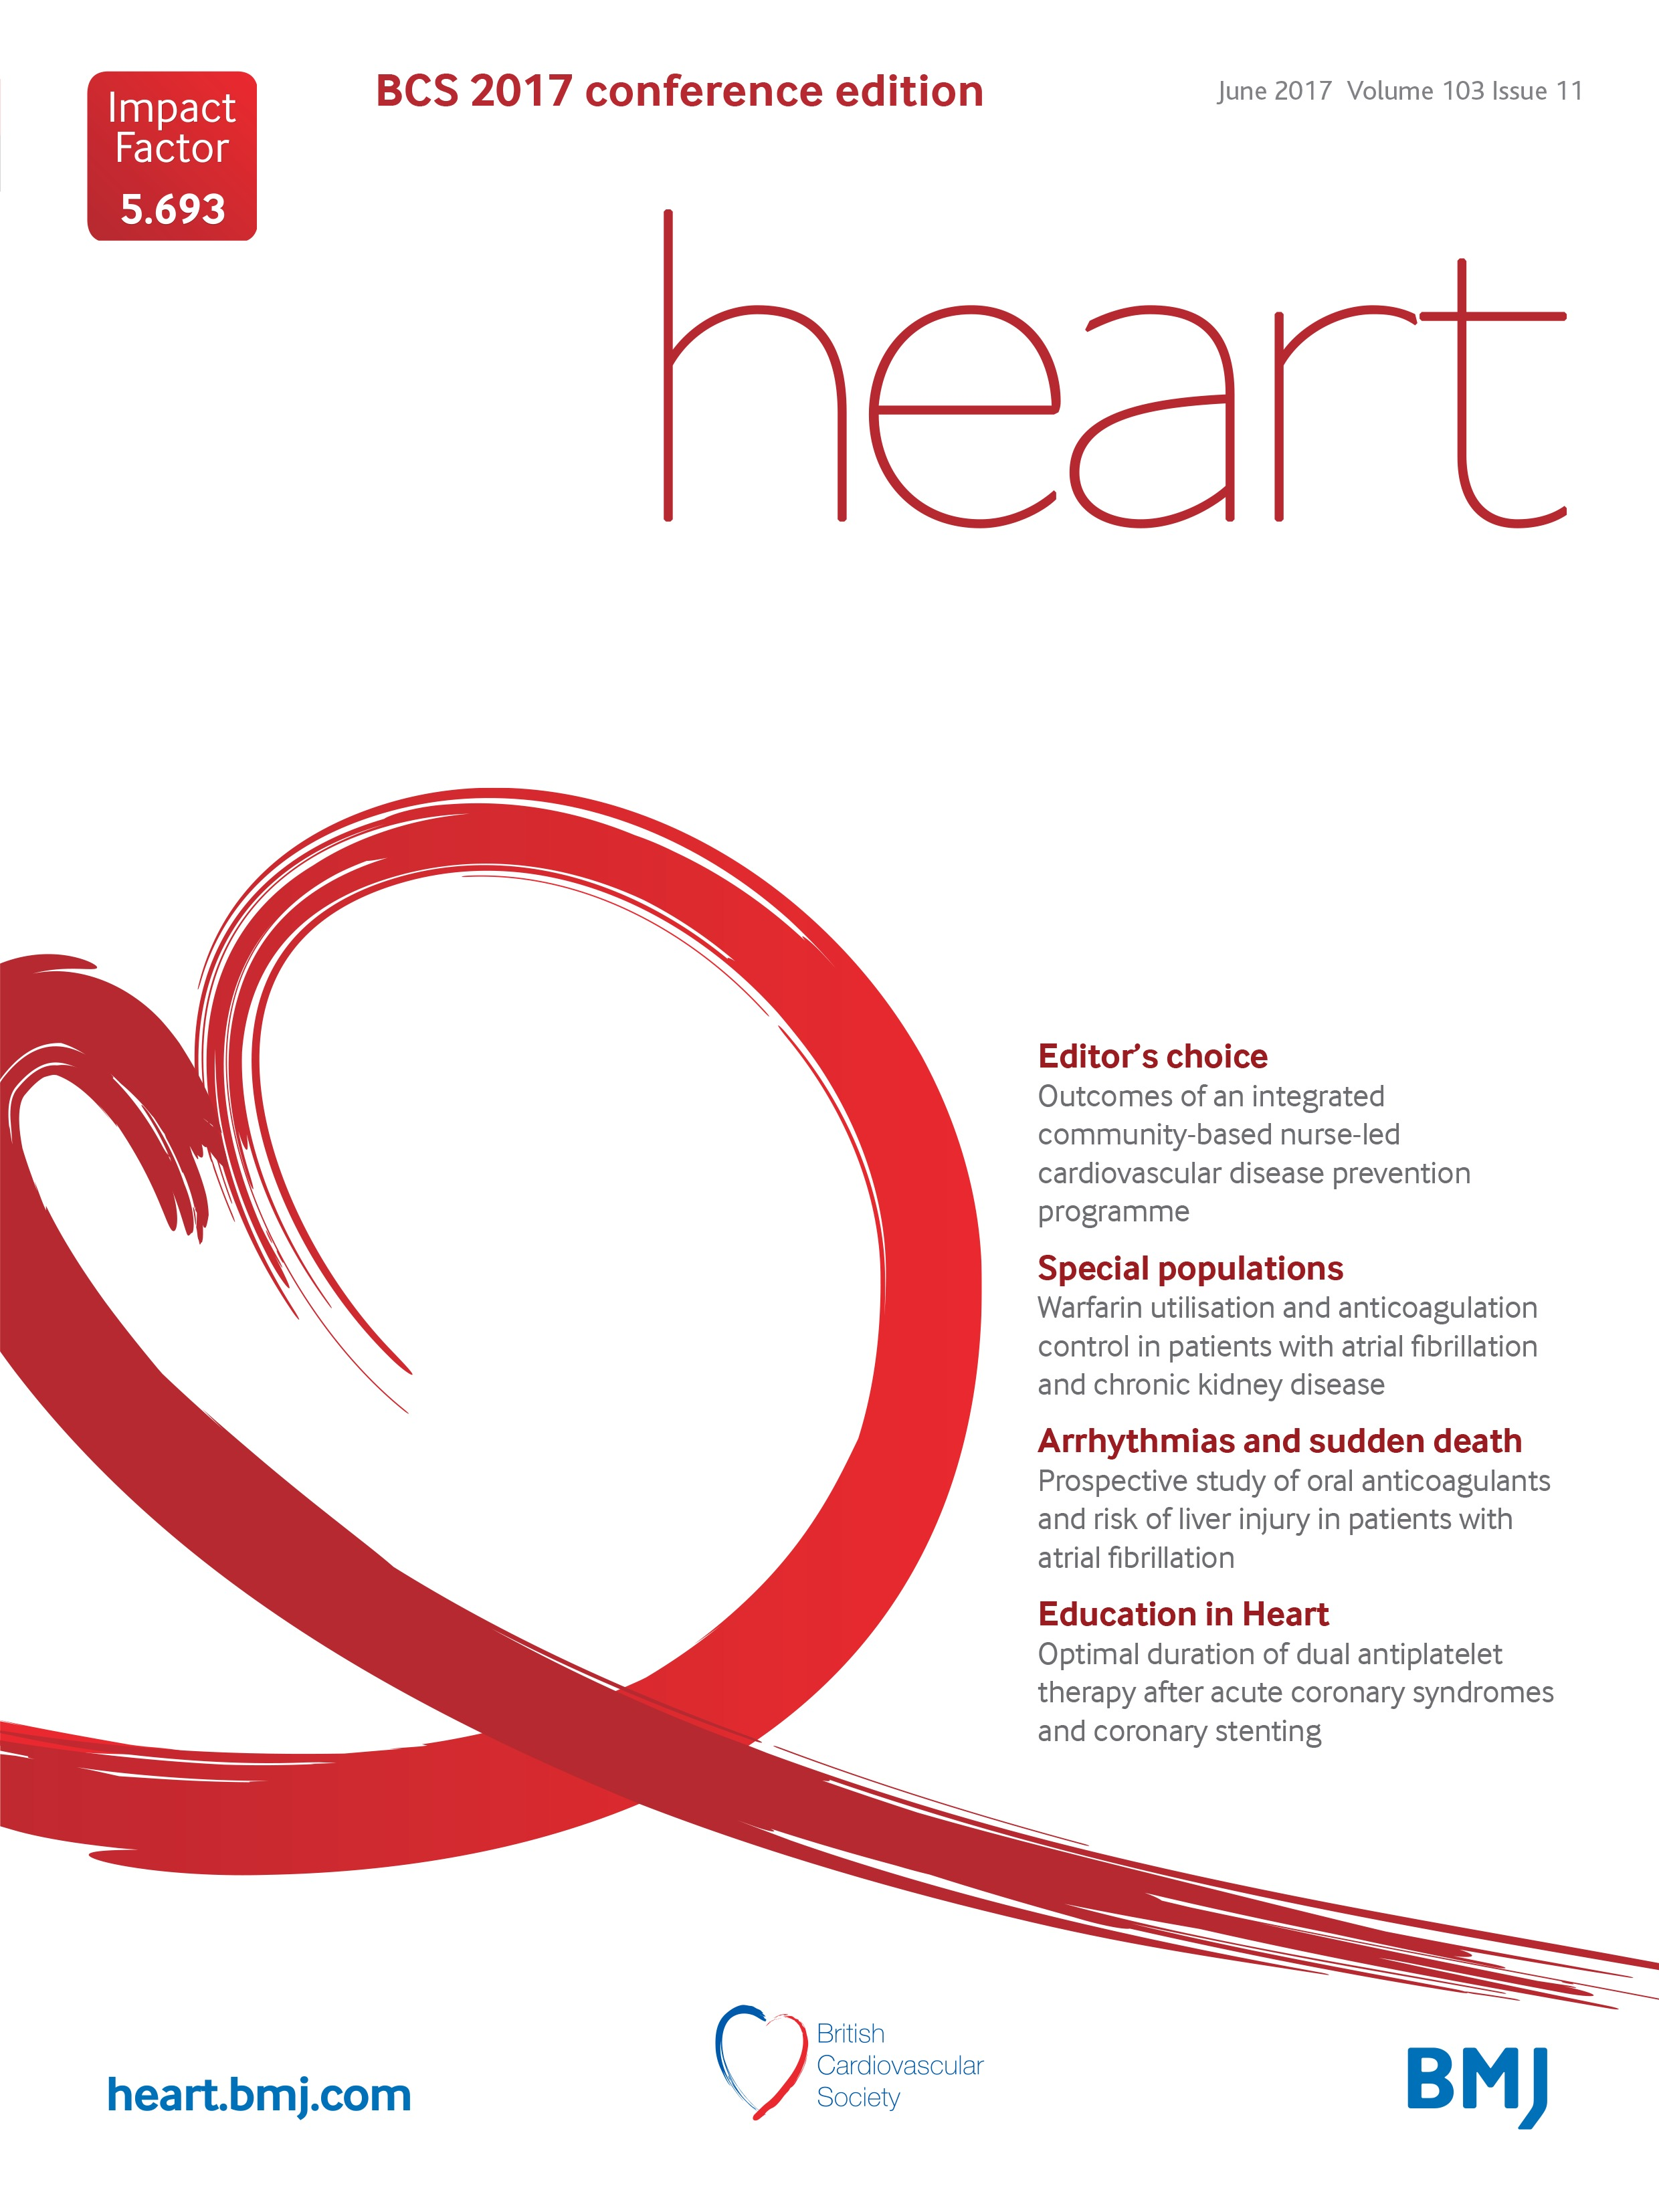 Warfarin Utilisation And Anticoagulation Control In Patients With Atrial Fibrillation And Chronic Kidney Disease Heart